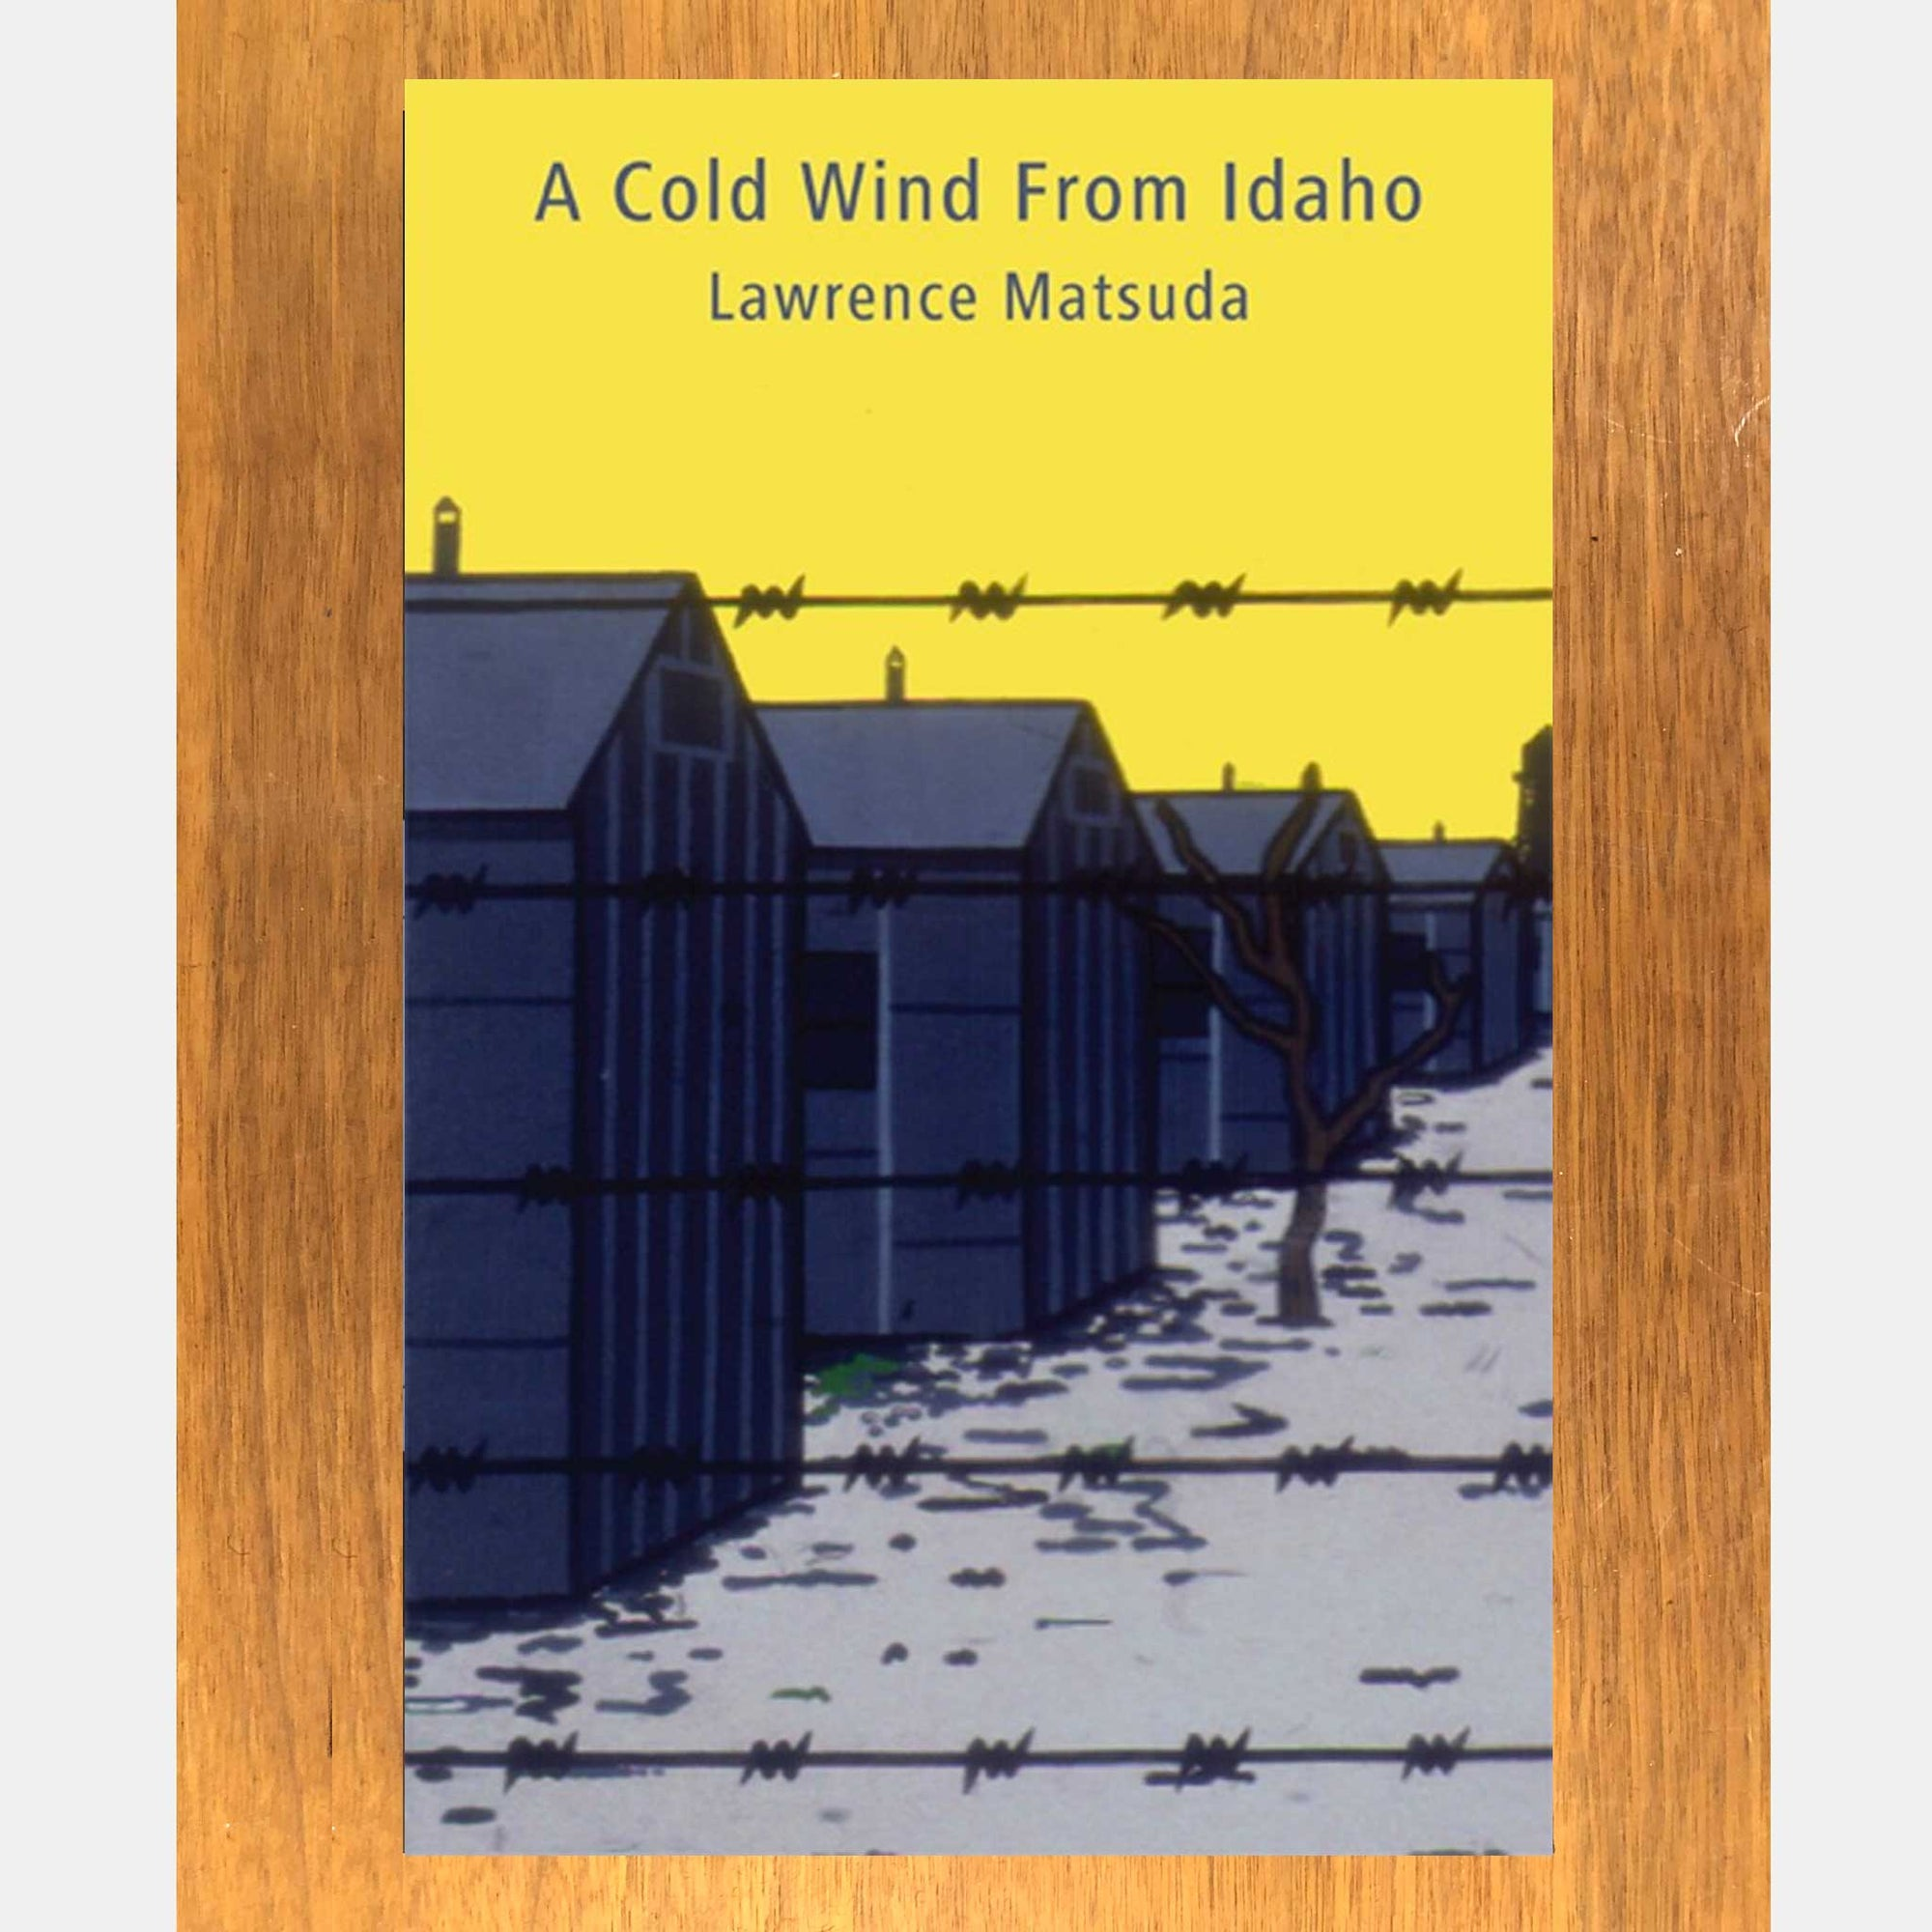 A Cold Wind From Idaho